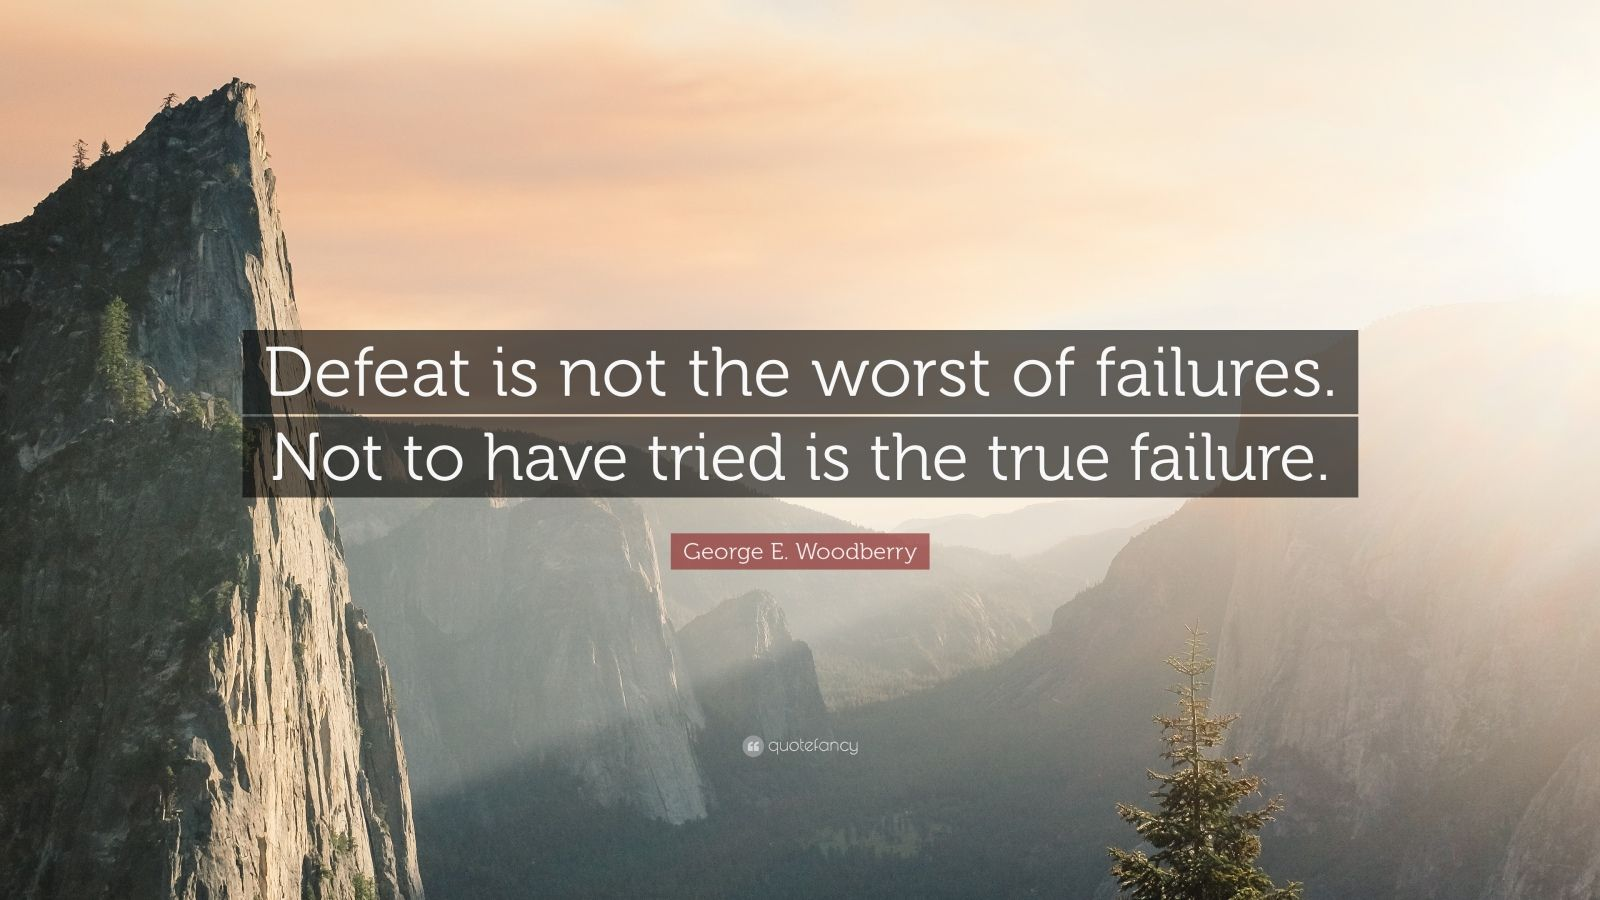 """George E. Woodberry Quote: """"Defeat is not the worst of failures. Not to have tried is the true failure."""""""